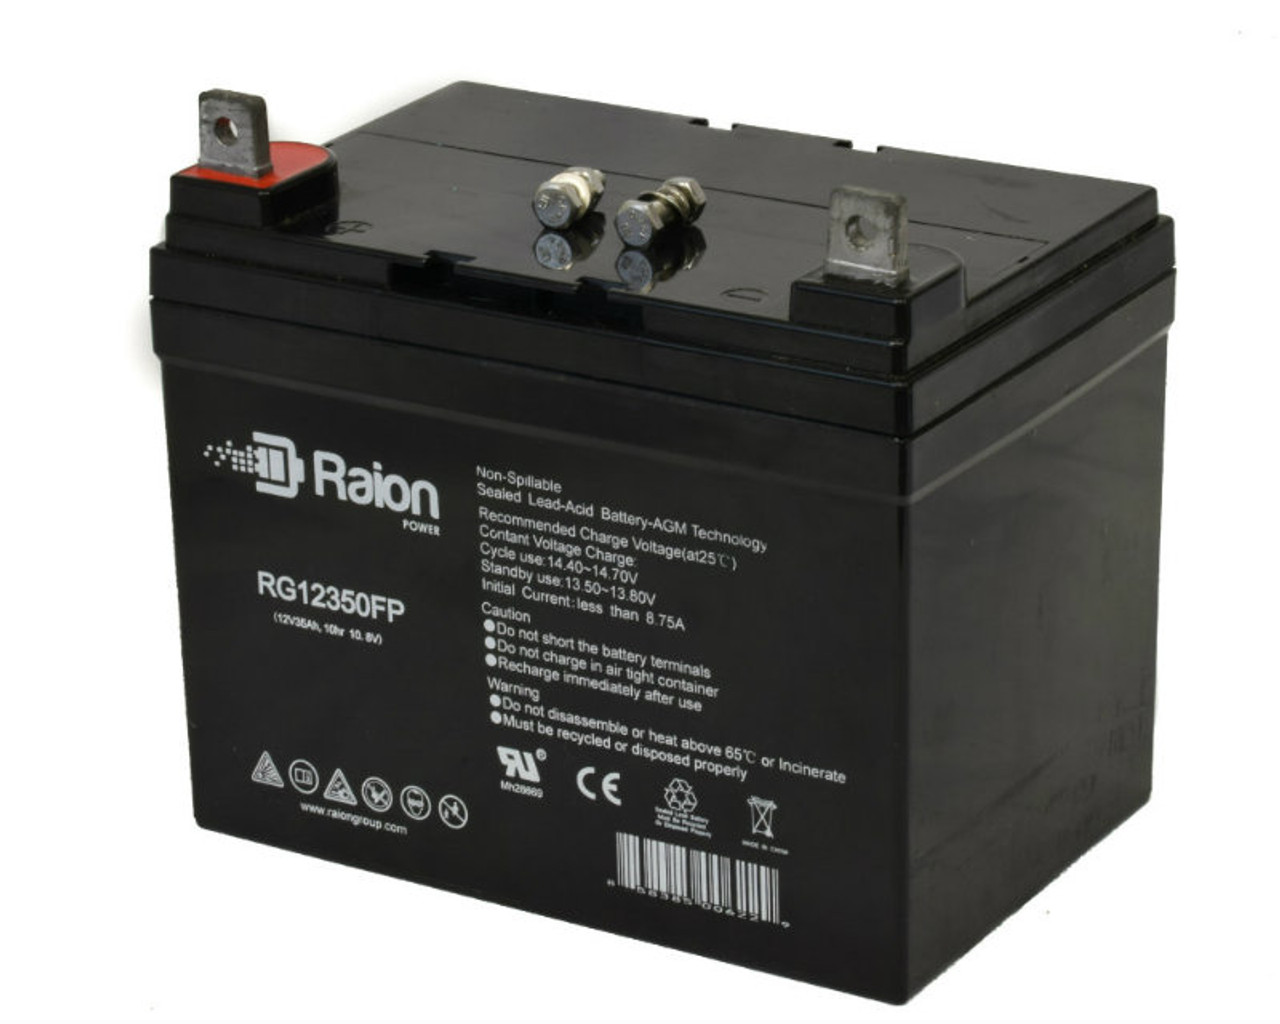 RG12350FP Sealed Lead Acid Battery Pack For Chauffeur Mobility Viva Powerchair GP24 Mobility Scooter